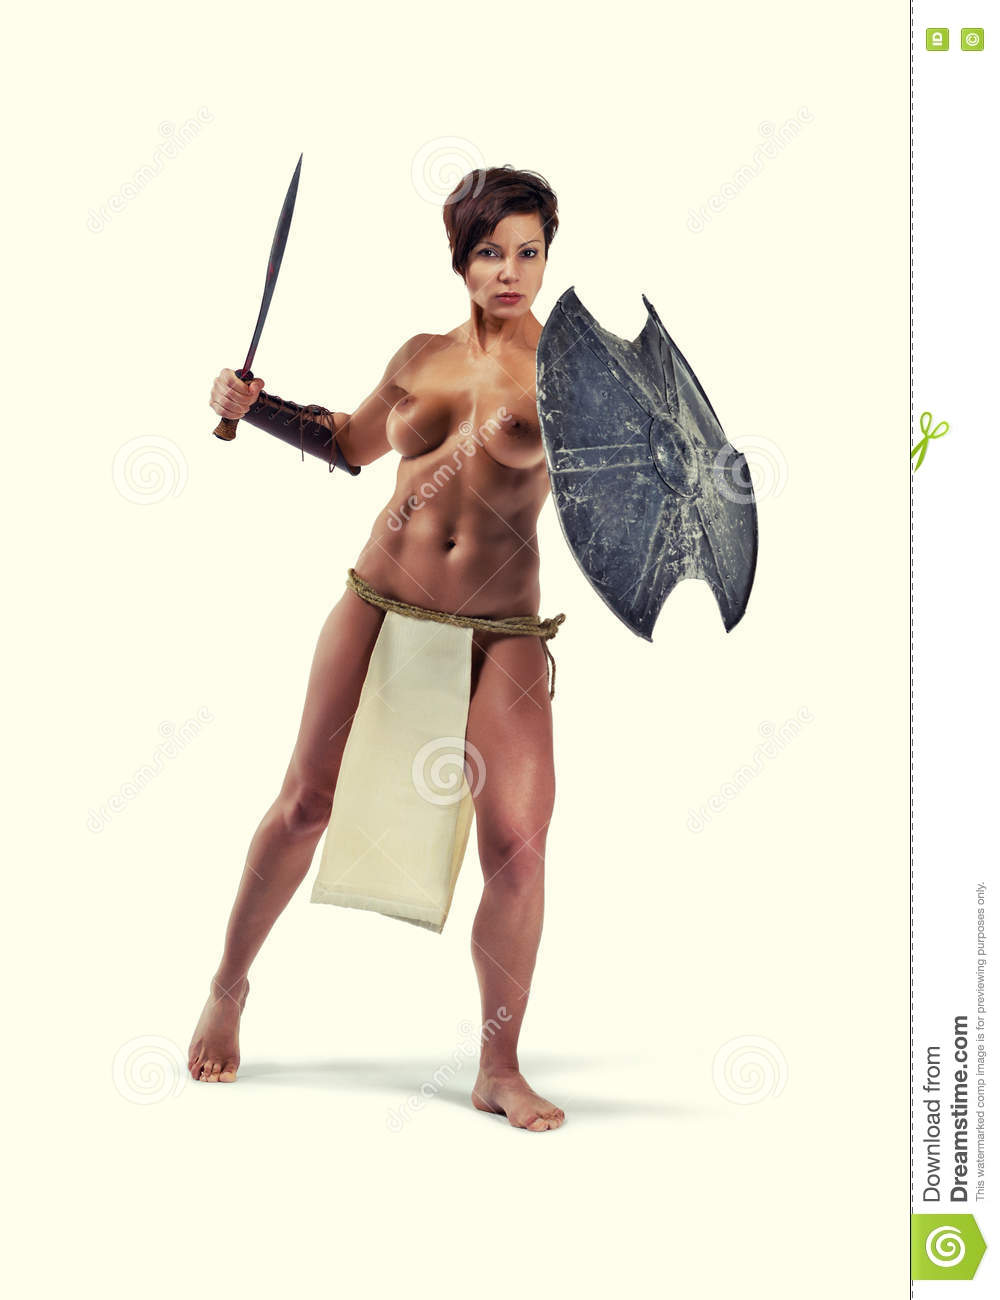 topless Warrior woman